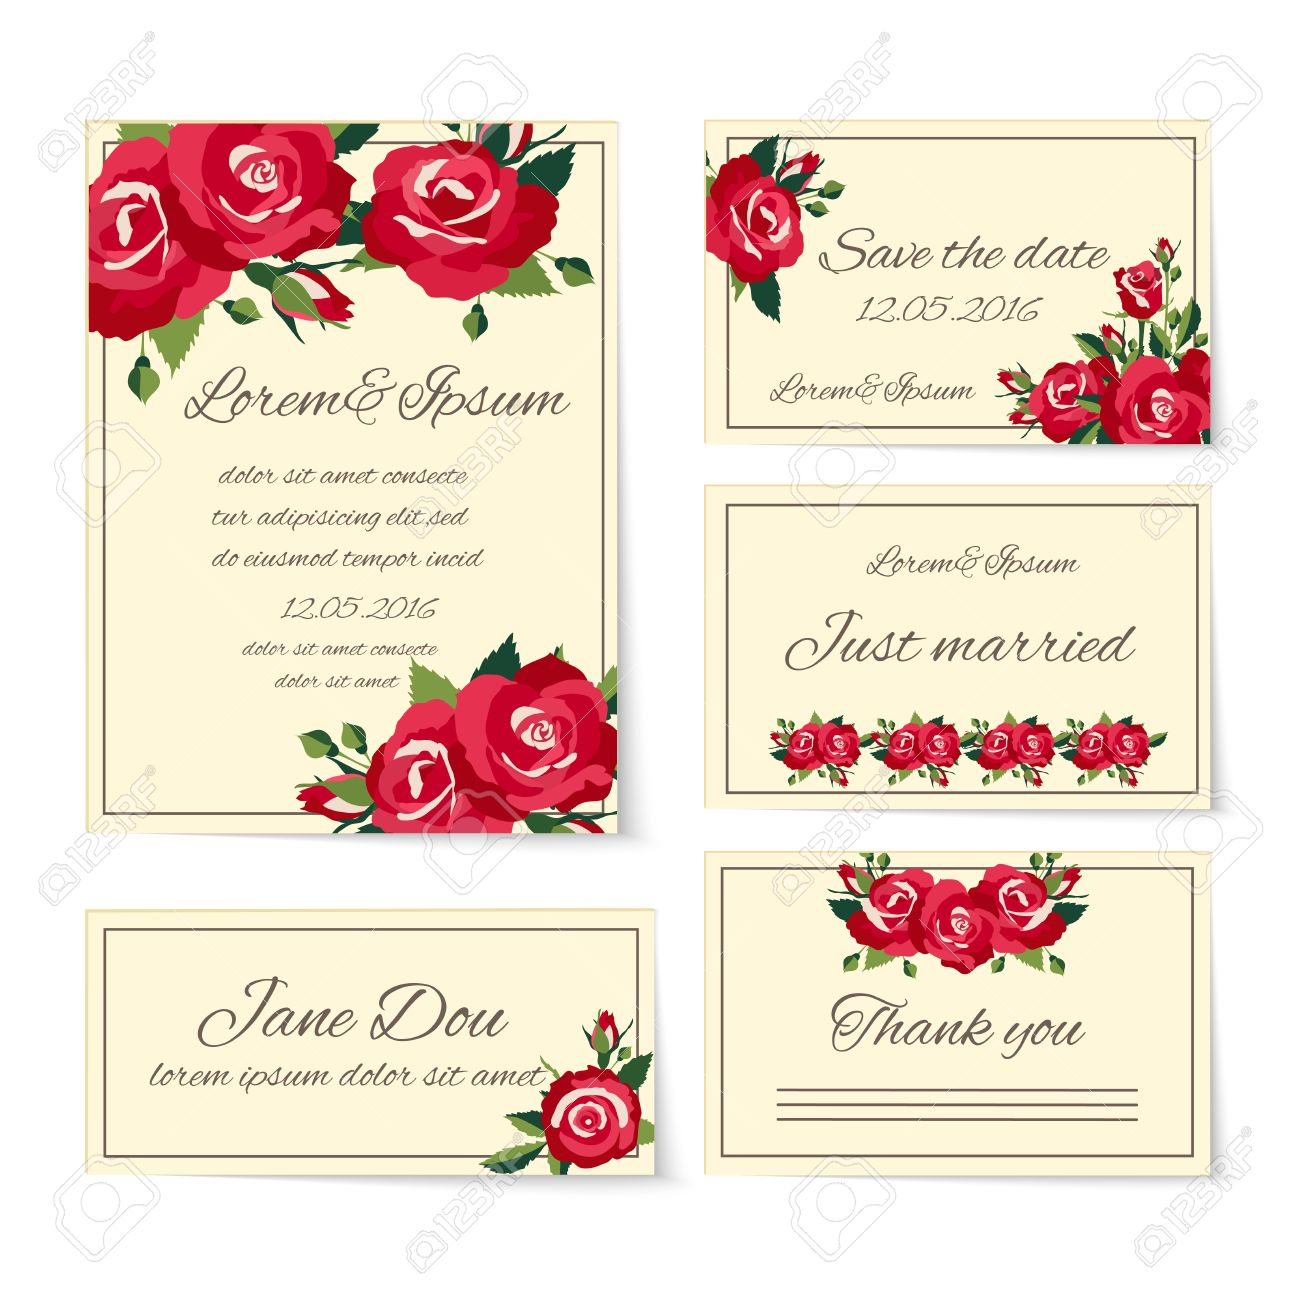 Complete Set Of Wedding Card Templates Covering Invitation Cards ...